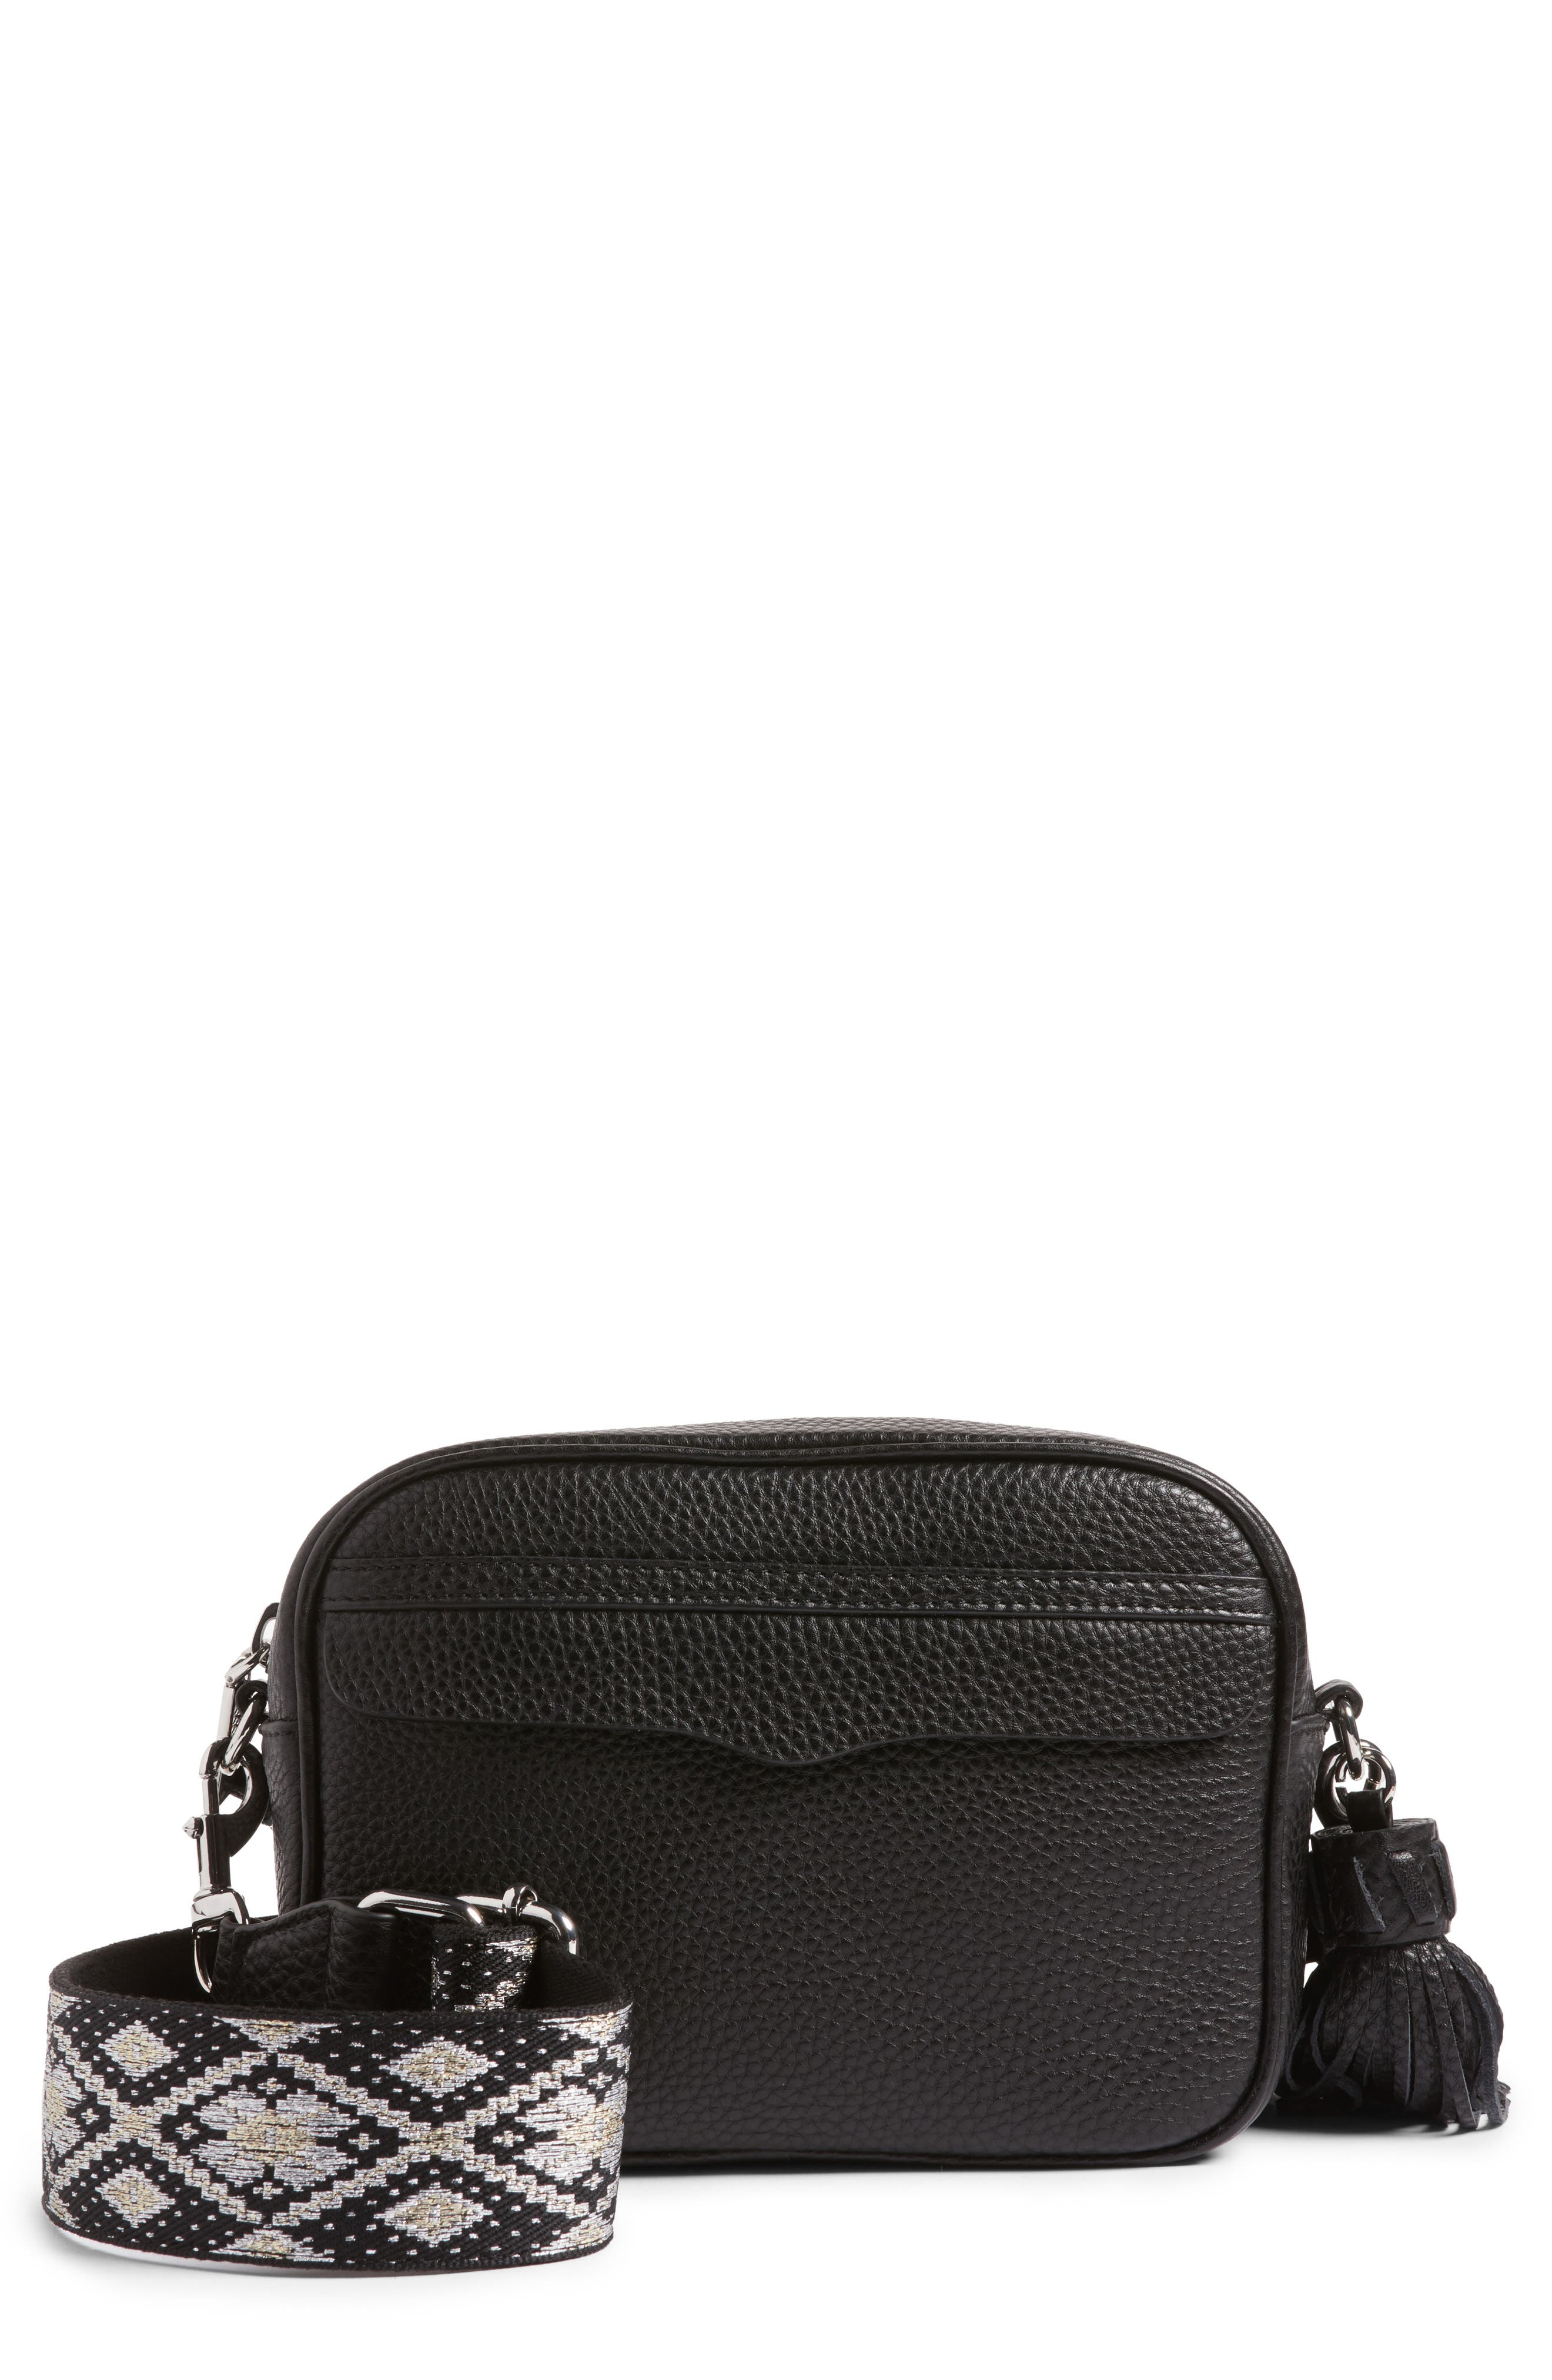 Main Image - Rebecca Minkoff Leather Camera Bag with Guitar Strap (Nordstrom Exclusive)